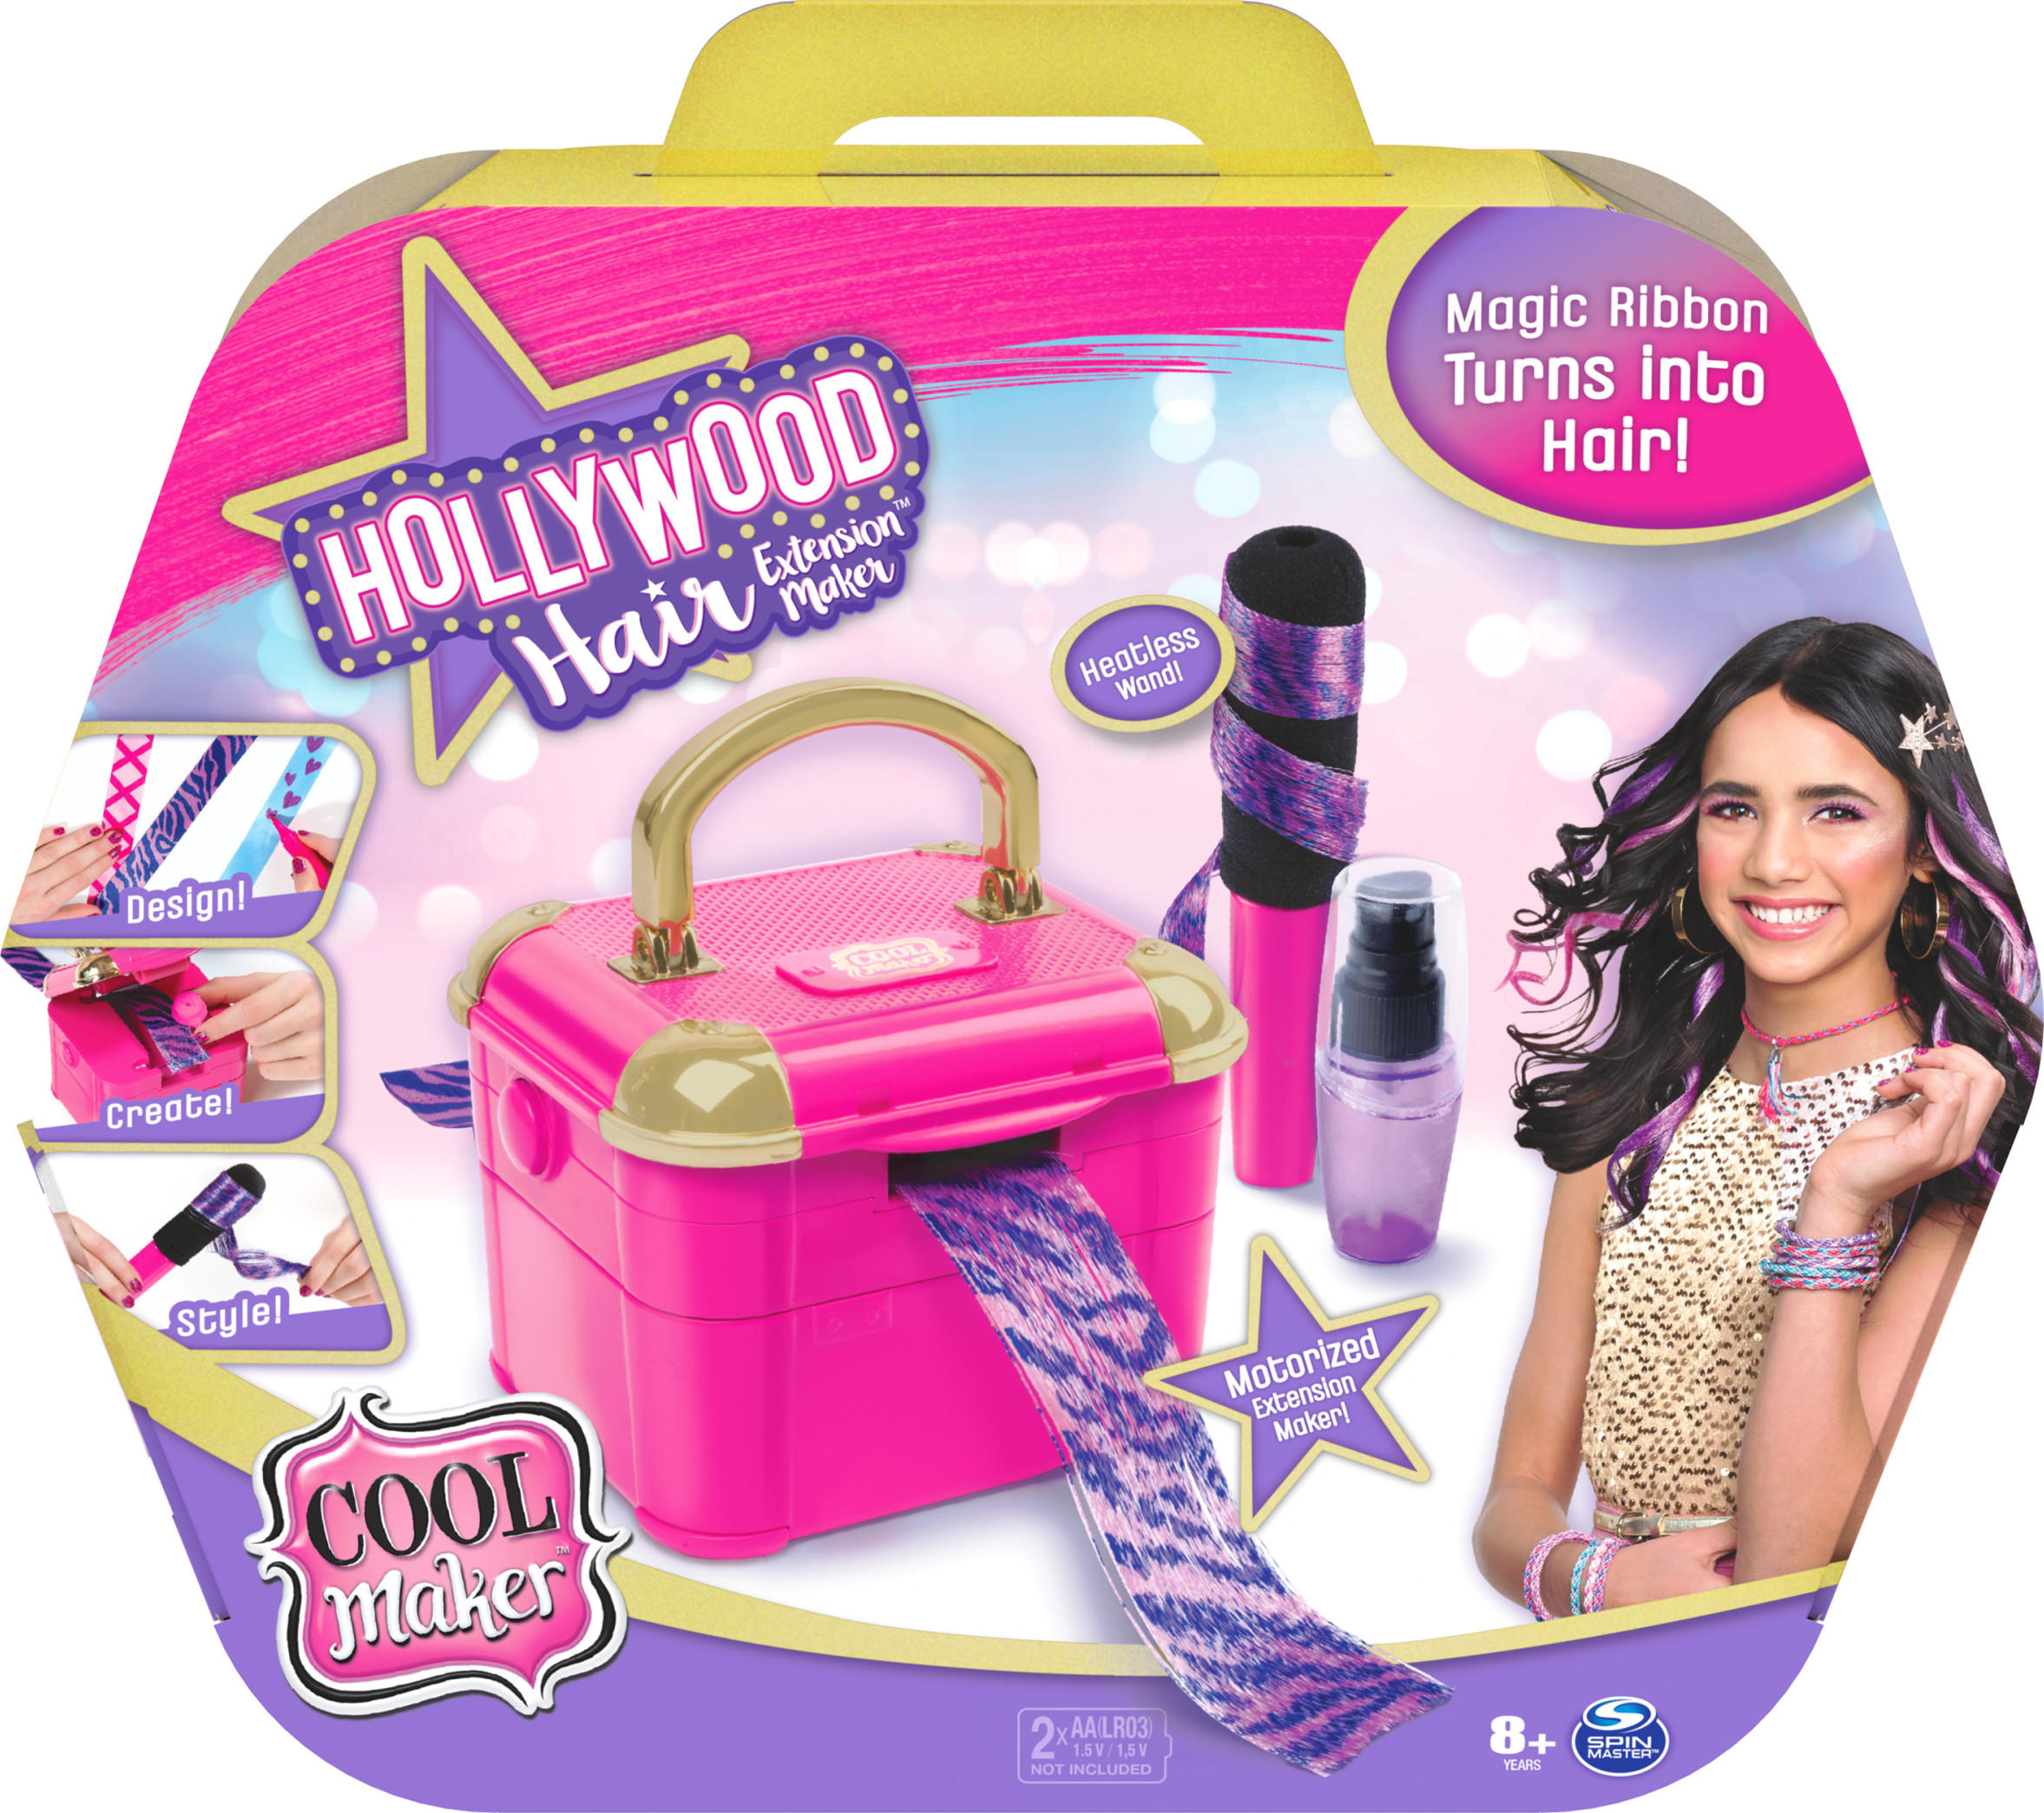 Cool Maker, Hollywood Hair Extension Maker with 12 Customizable Extensions and Accessories, for Kids Aged 8 and up - Walmart.com